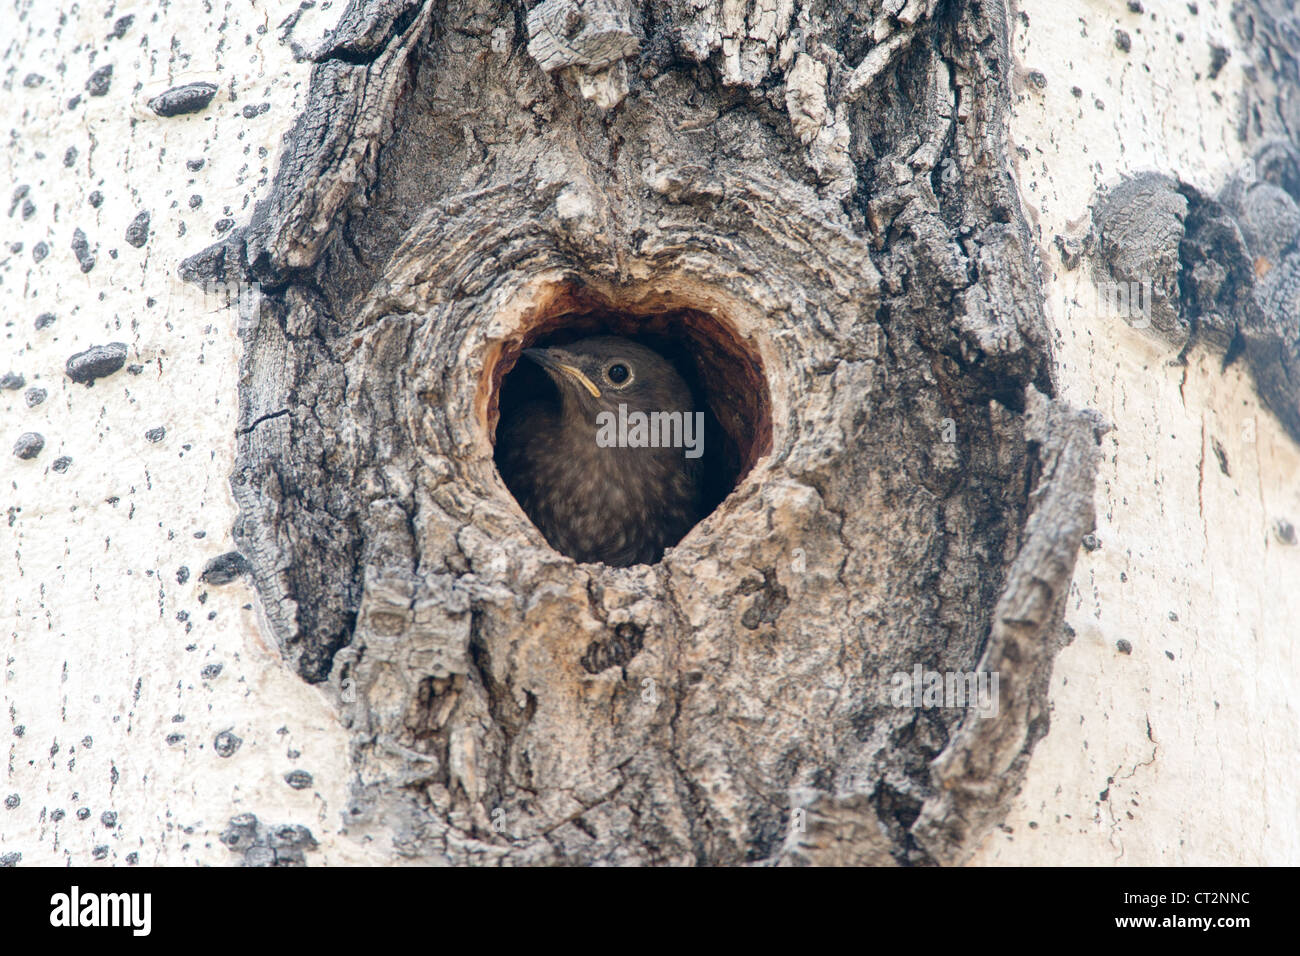 A nestling Mountain Bluebird in it's nest cavity just prior to fledgling - Stock Image